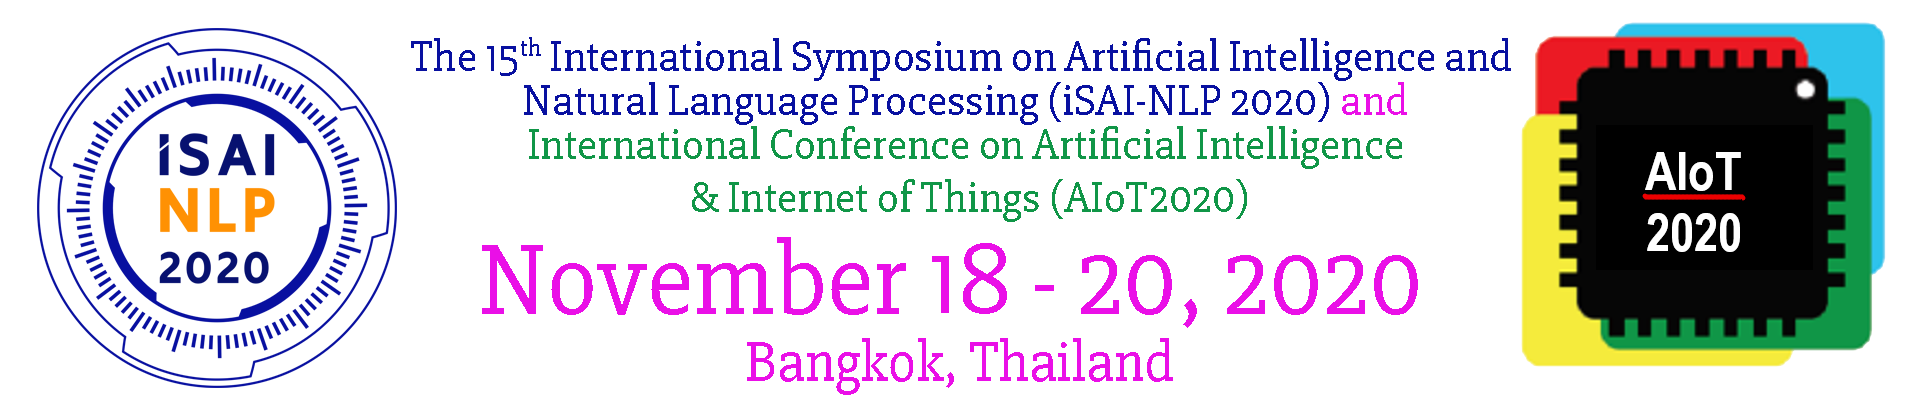 The Fifteen International Joint Symposium on Artificial Intelligence and Natural Language Processing (iSAI-NLP2020) and  International Conference on Artificial Intelligence & Internet of Things (AIoT 2020)